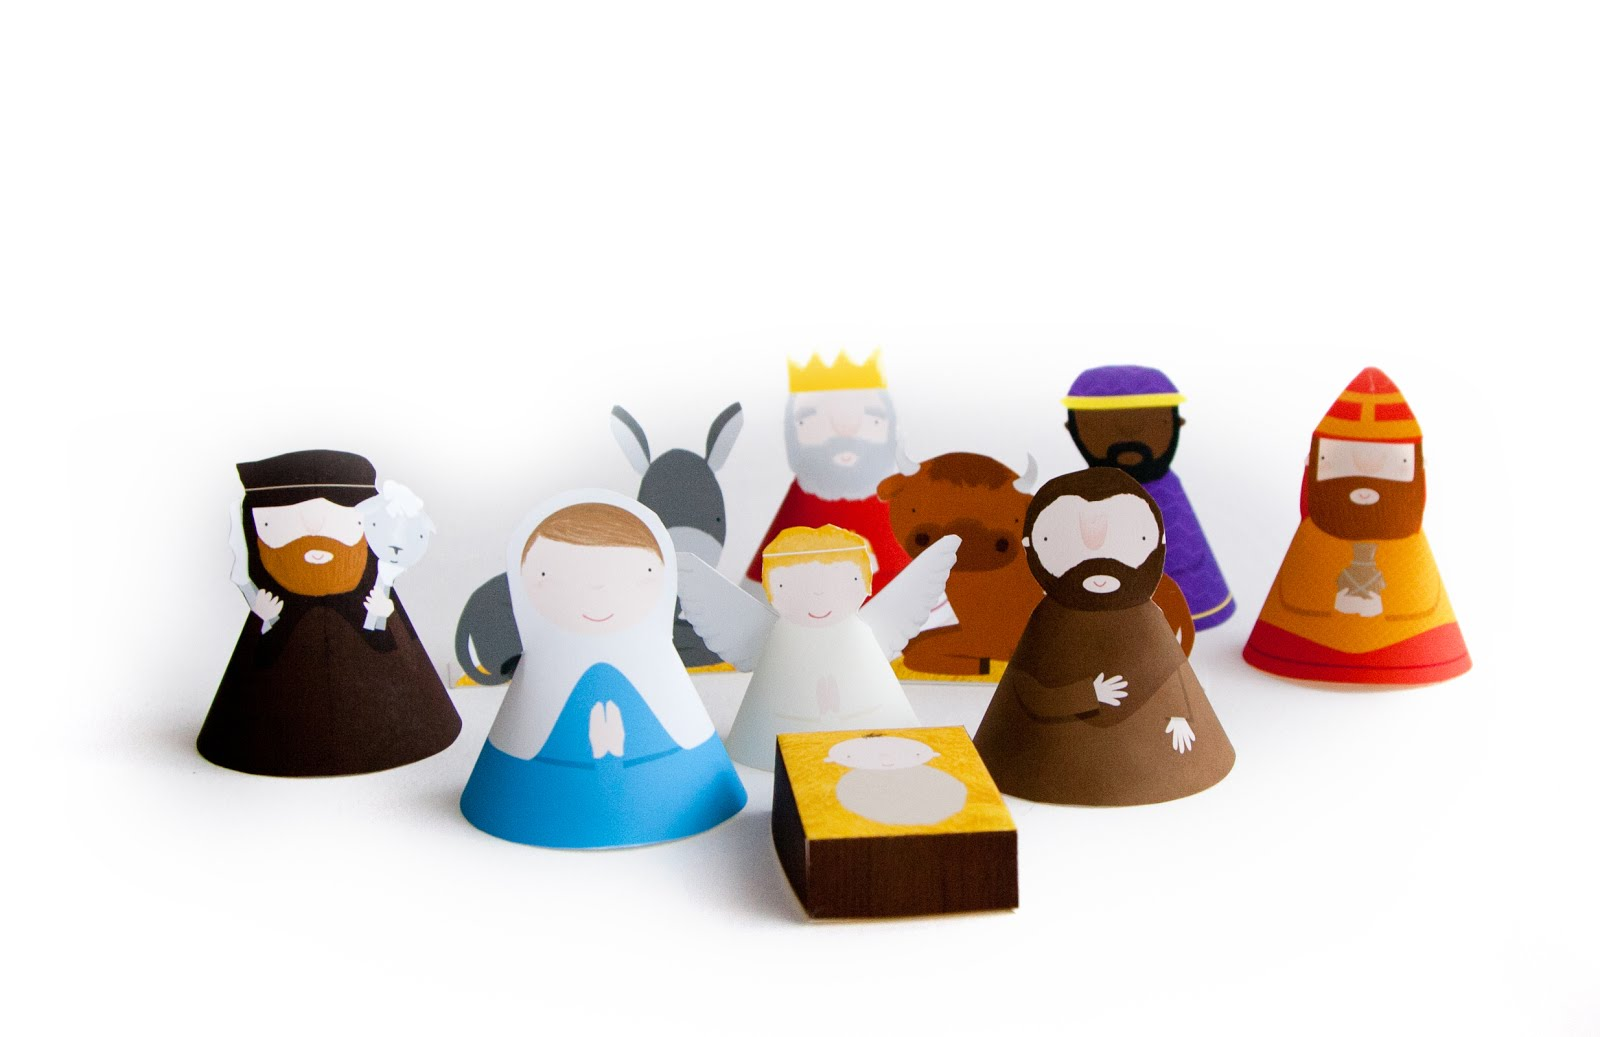 Marloes de vries blog diy make your own nativity set go to my new website and download the pdf print the 2 pages on thick paper or thin cardboard set your print quality to high for better details solutioingenieria Gallery